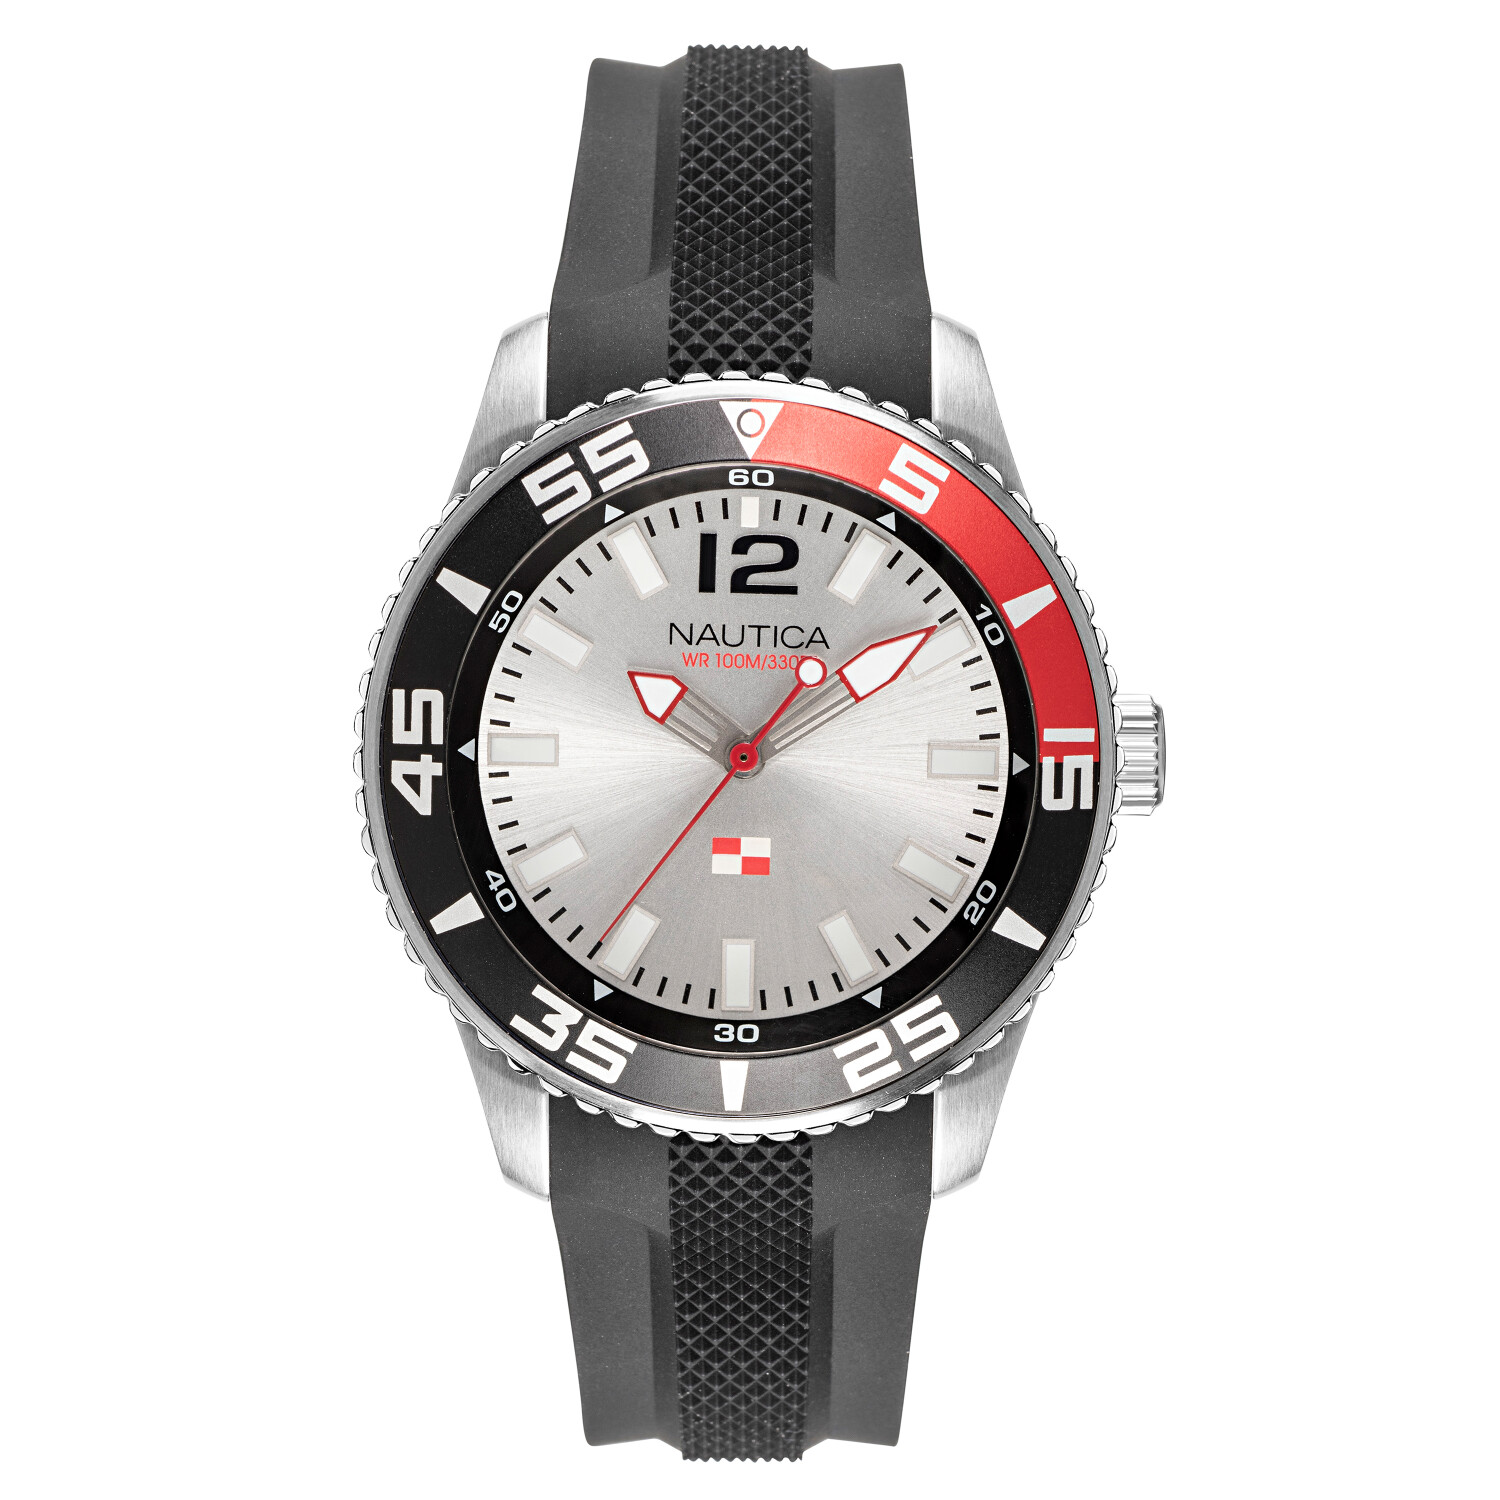 Nautica Watch NAPPBP904 Pacific Beach, Analog, Water Resistant, Luminous Hands, Silicone Band, Buckle Clasp, White